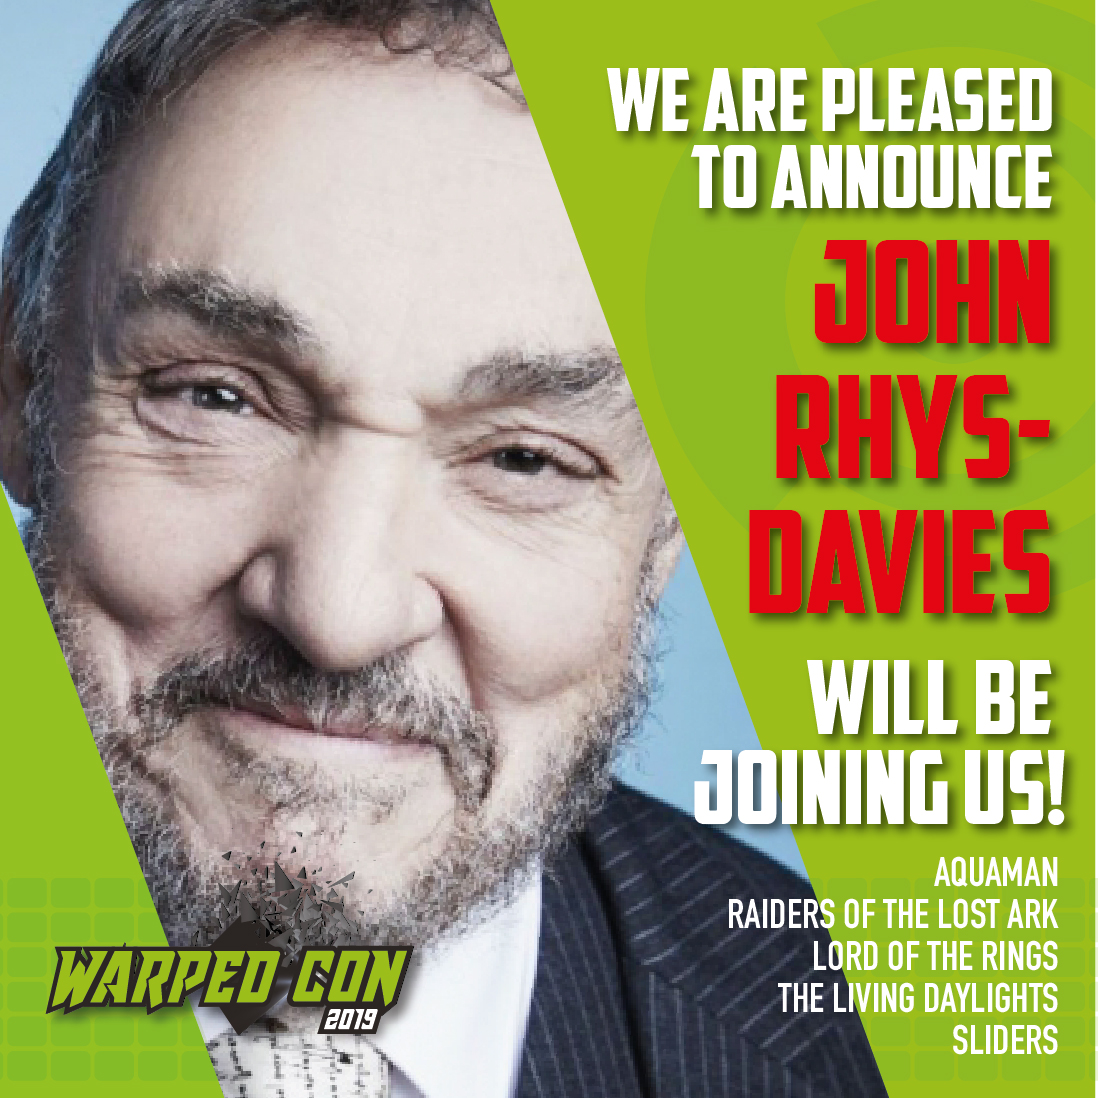 John Rhys-Davies guest image in green squared